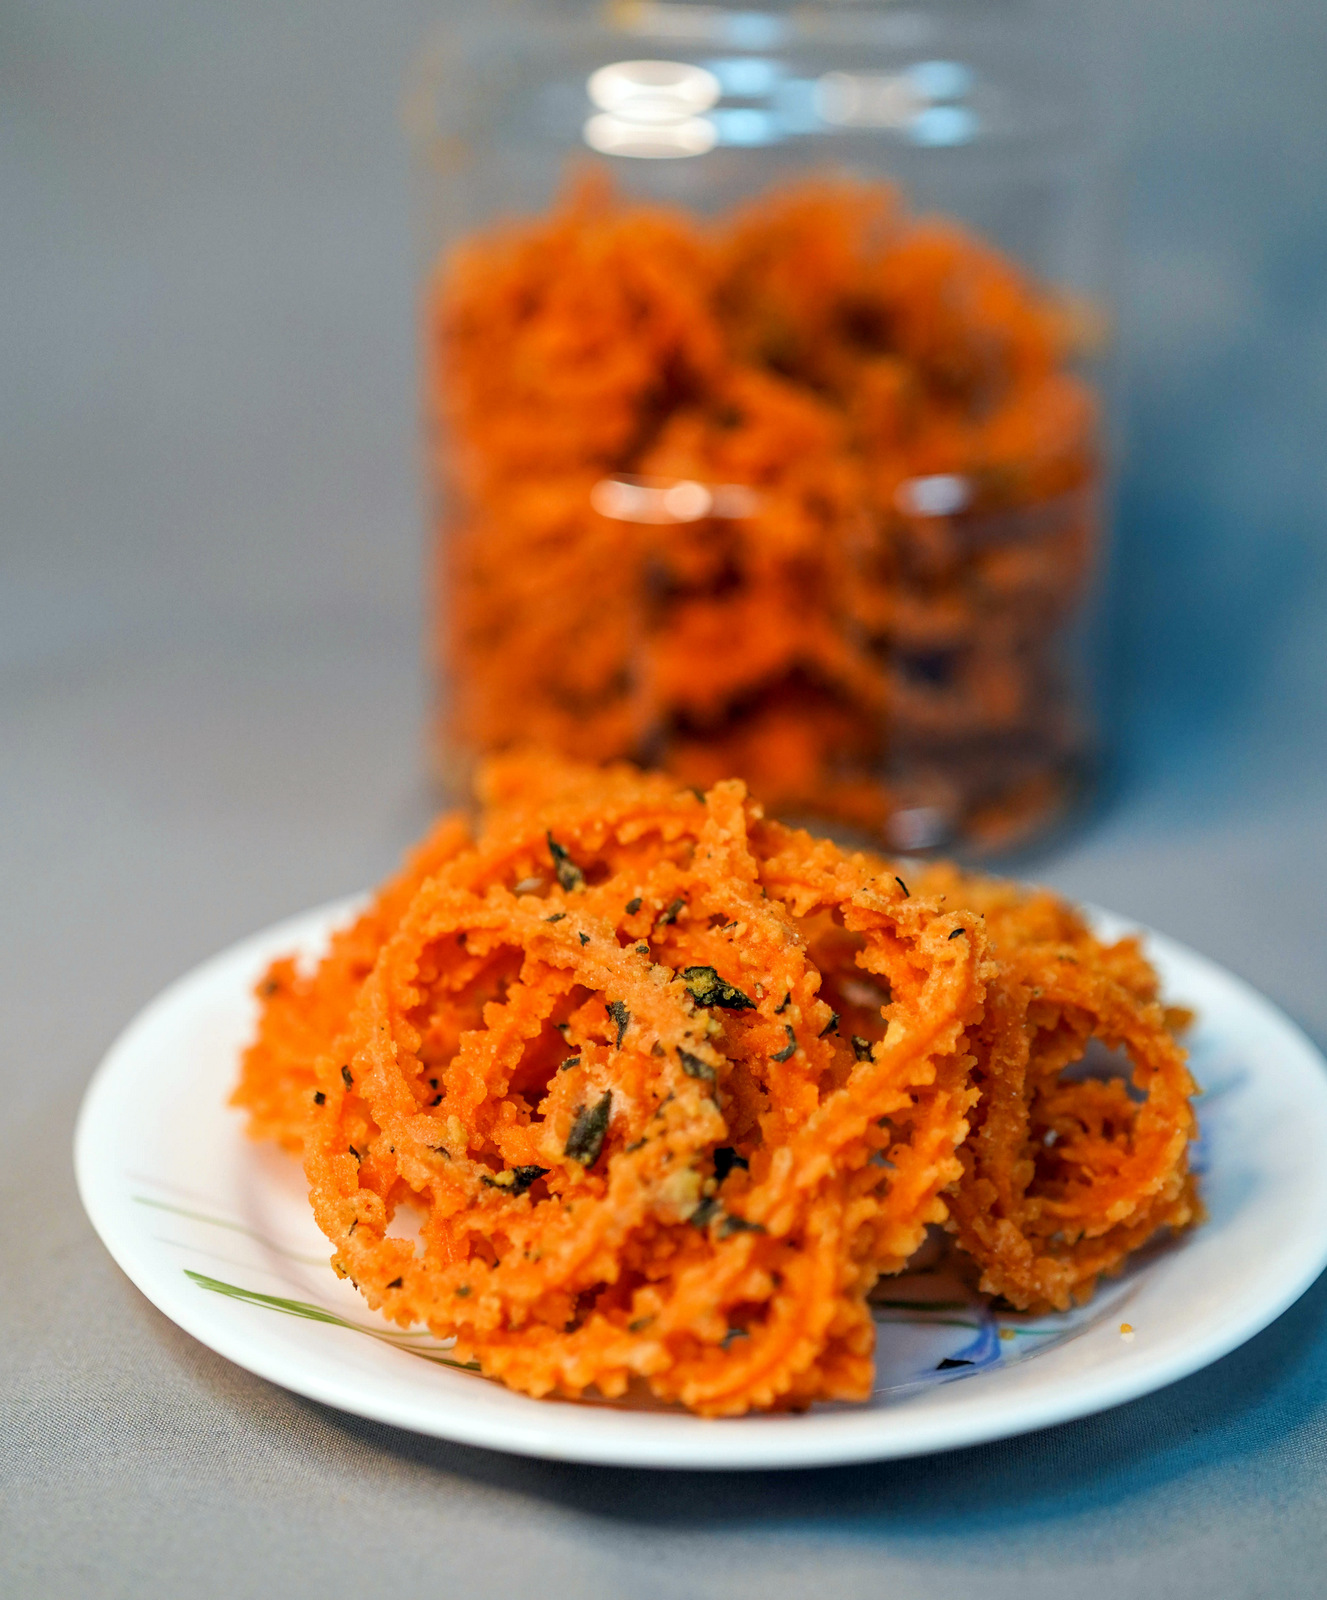 salty eggu: salted egg yolk murukku